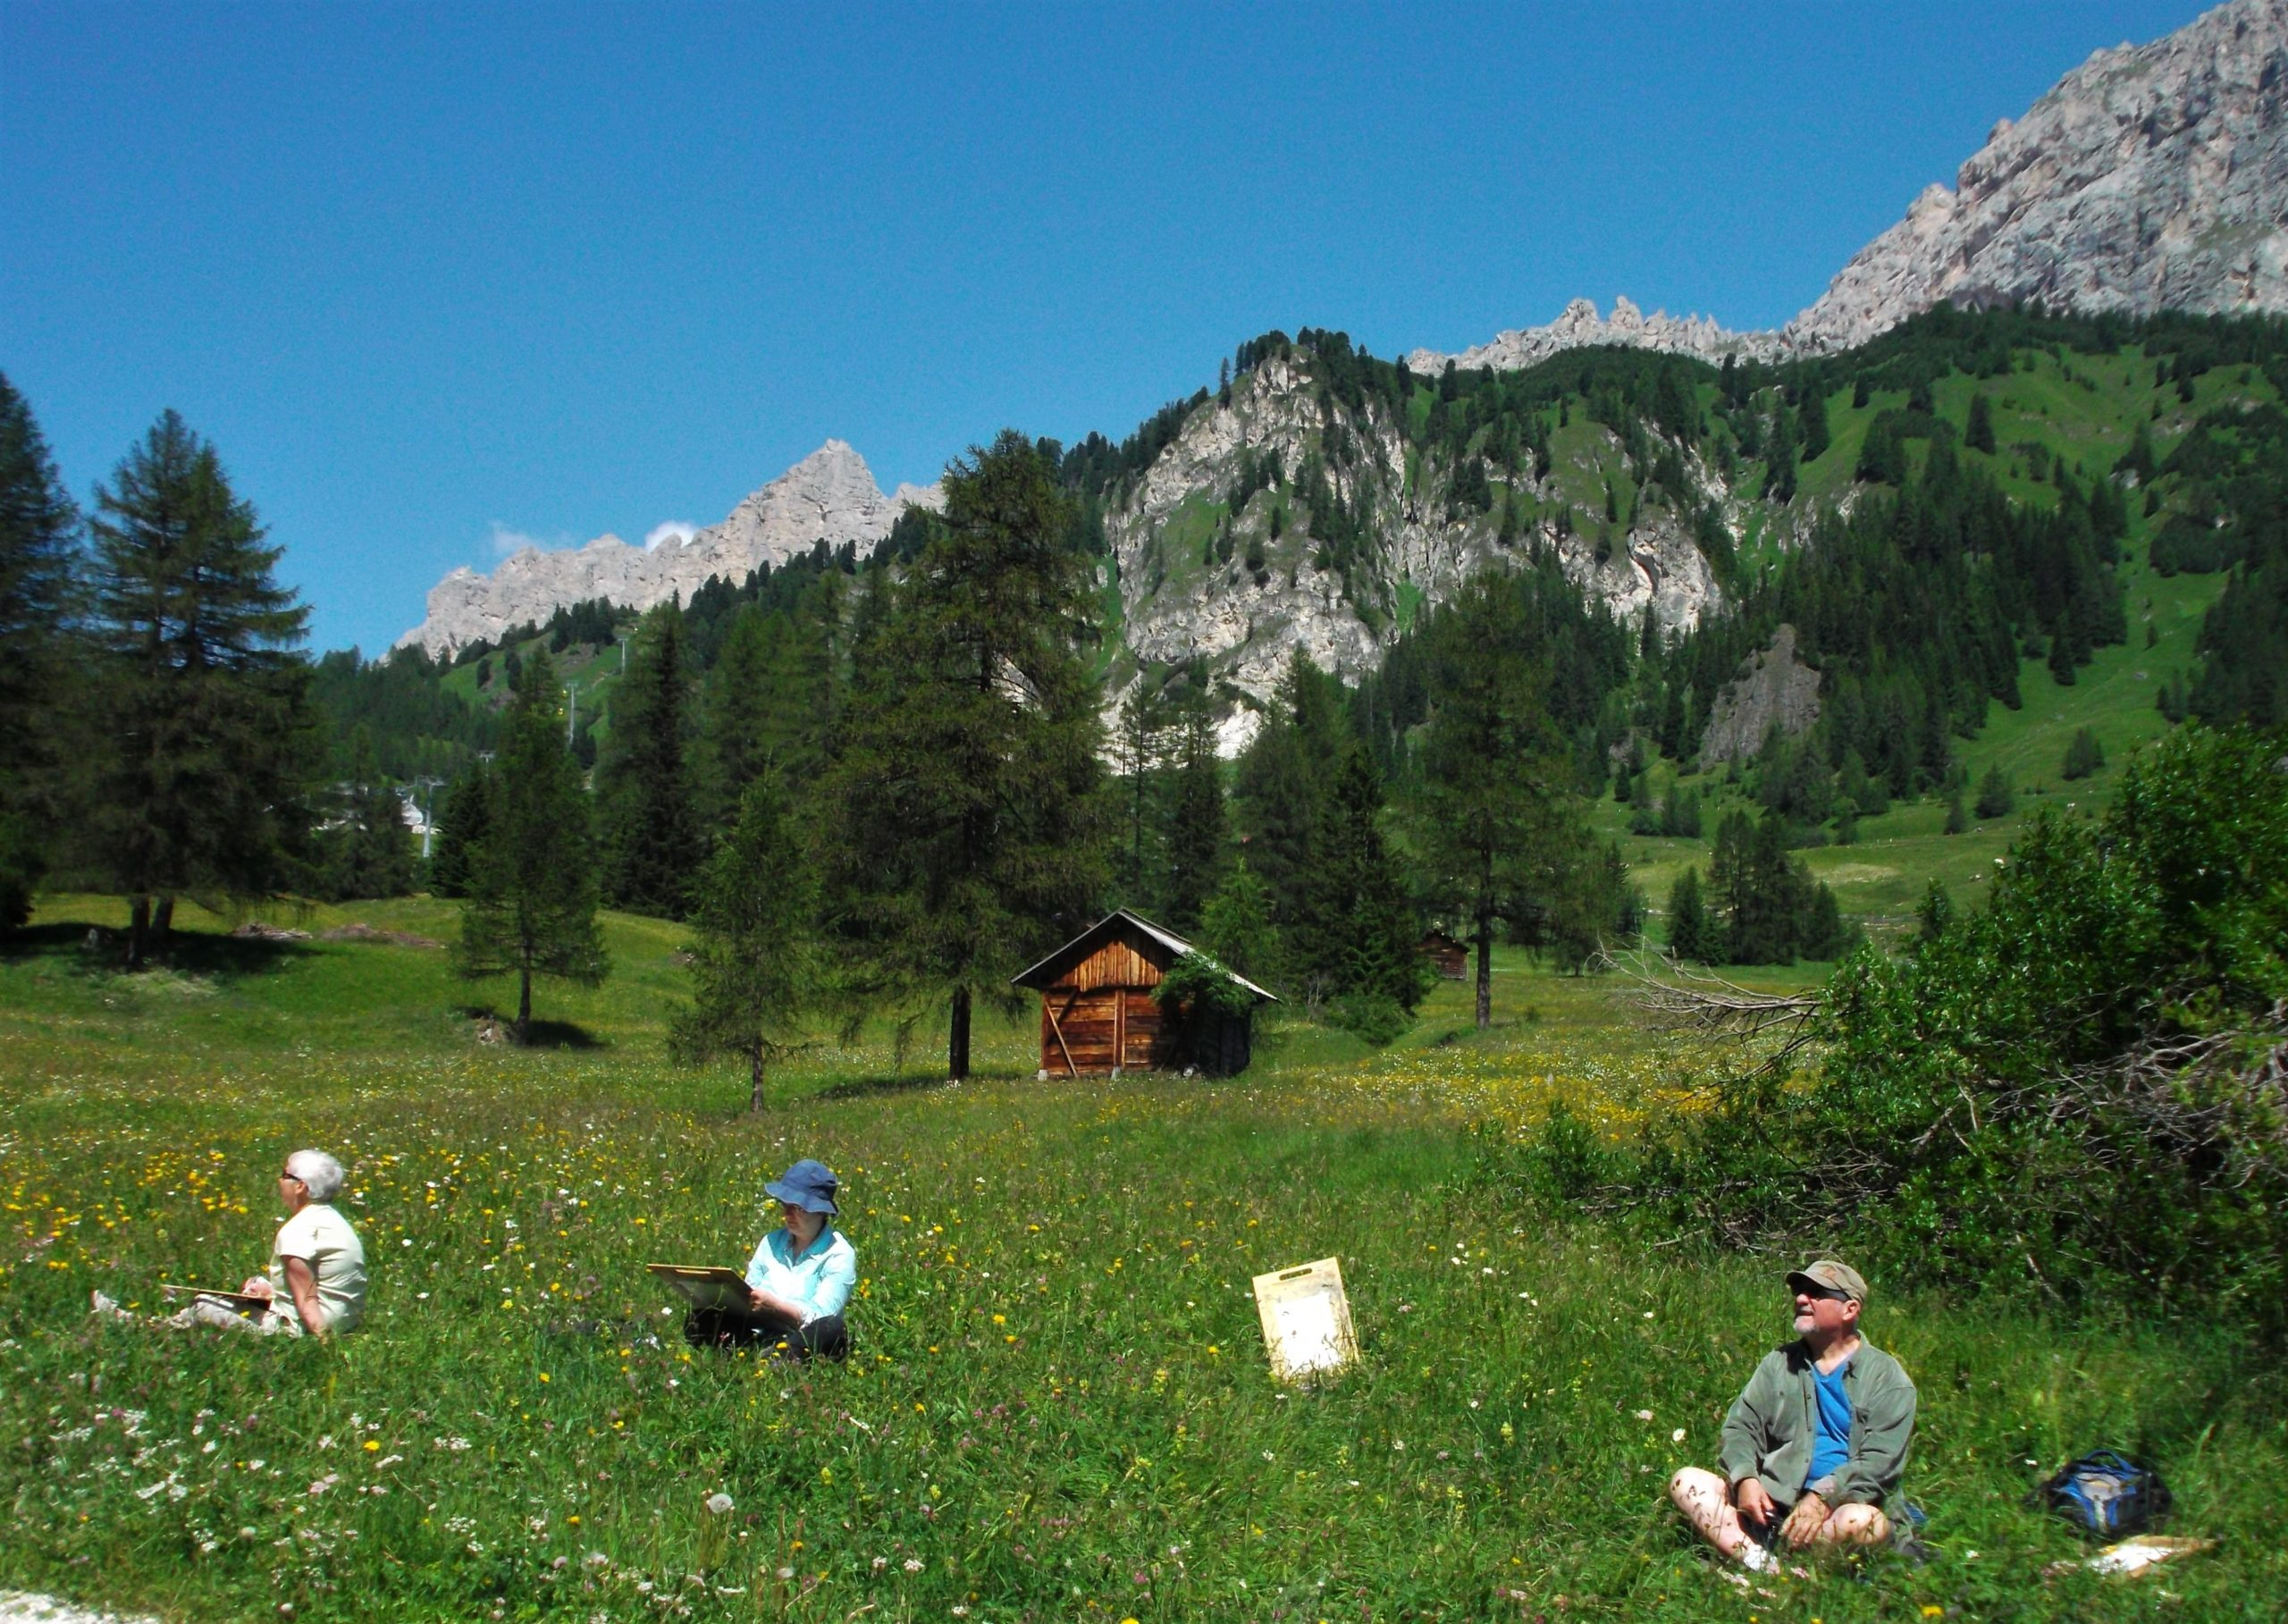 Paintin group in the Dolomites